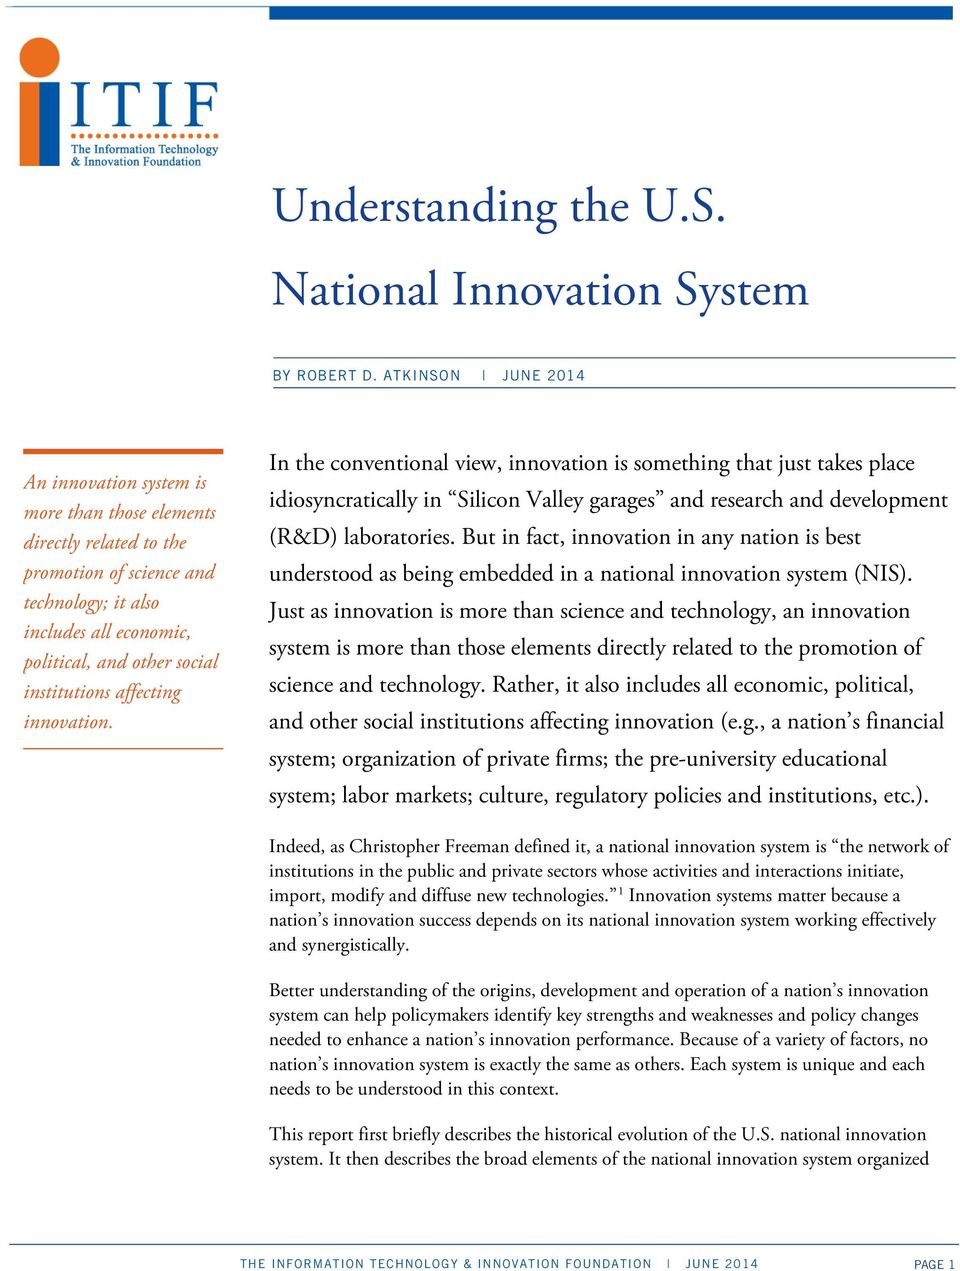 institutions affecting innovation. In the conventional view, innovation is something that just takes place idiosyncratically in Silicon Valley garages and research and development (R&D) laboratories.